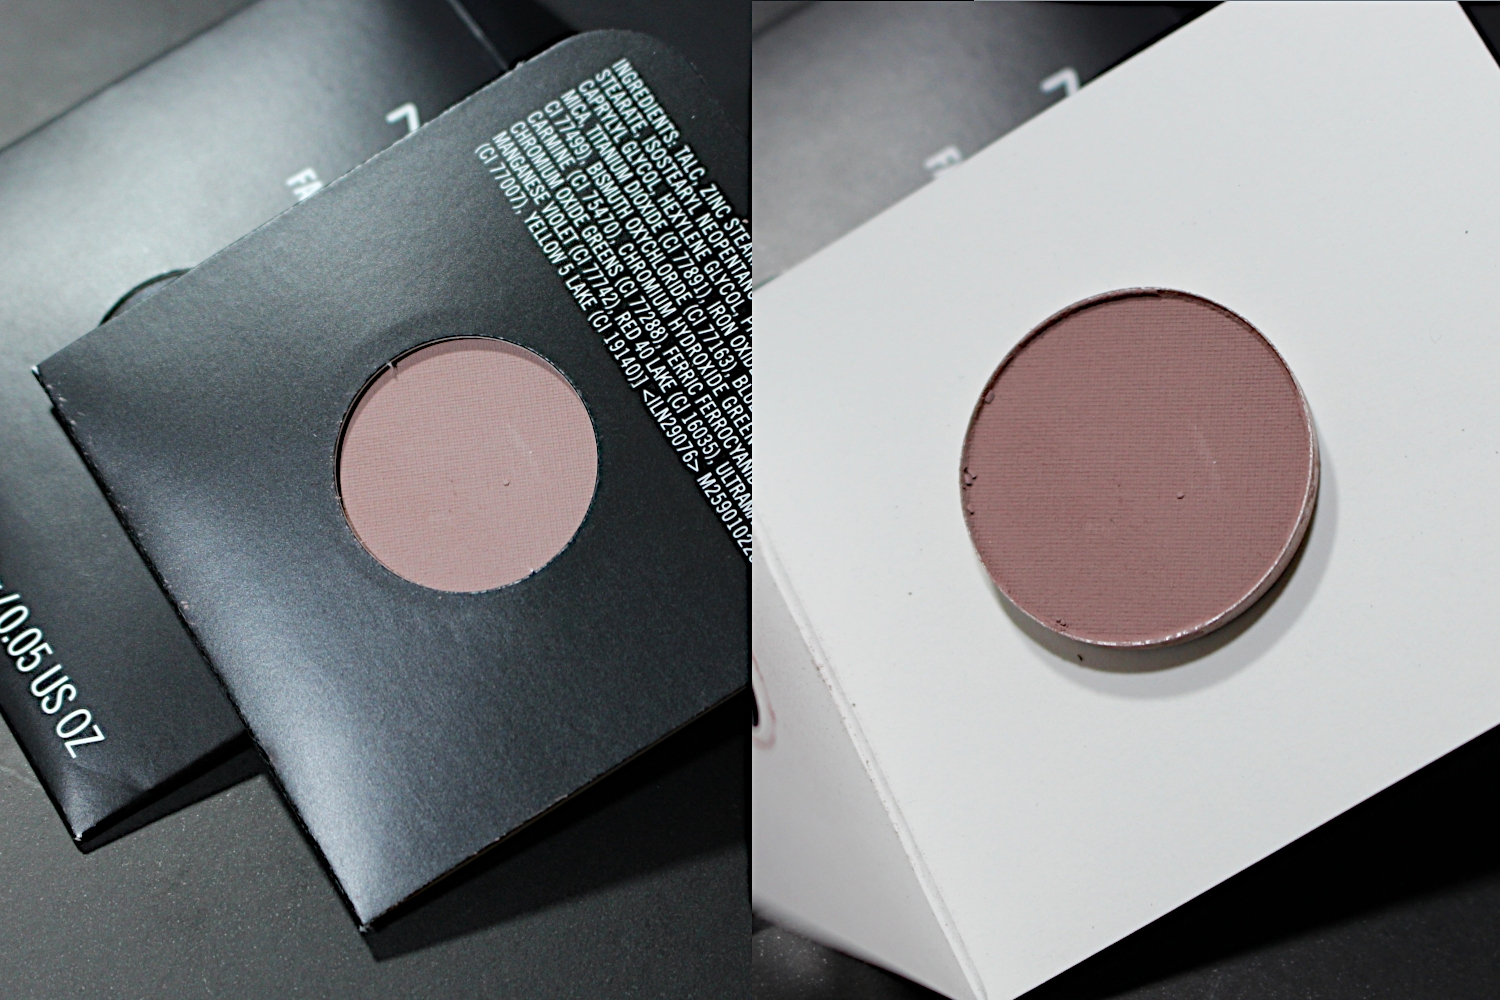 mac cosmetics eyeshadow refill swatches malt quarry espresso vanilla embark carbon beauty marked sable